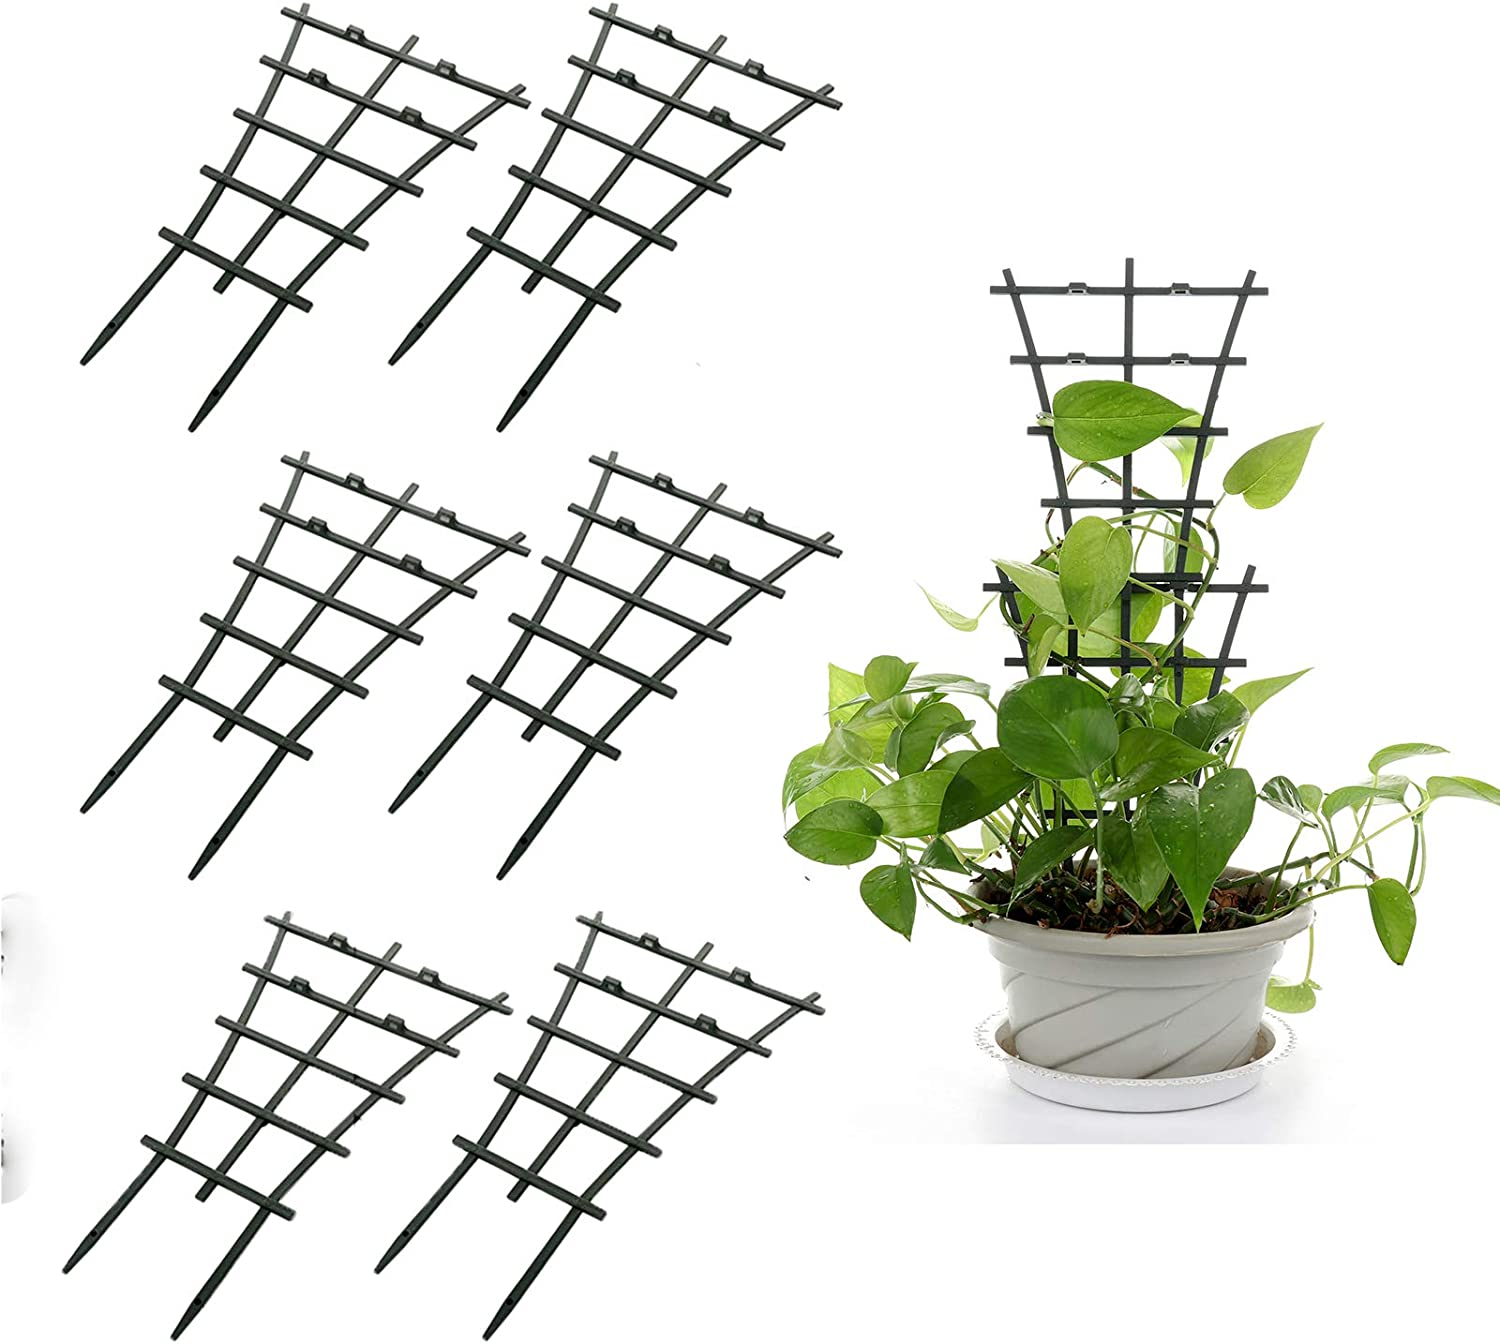 GWOKWAI 200Pcs Plant Support Clips Strong Tomato Veggie Fixed Buckle Reusable Garden Plant Grafting Fixed Buckle for Climbing Plant Vegetables Garden Planting